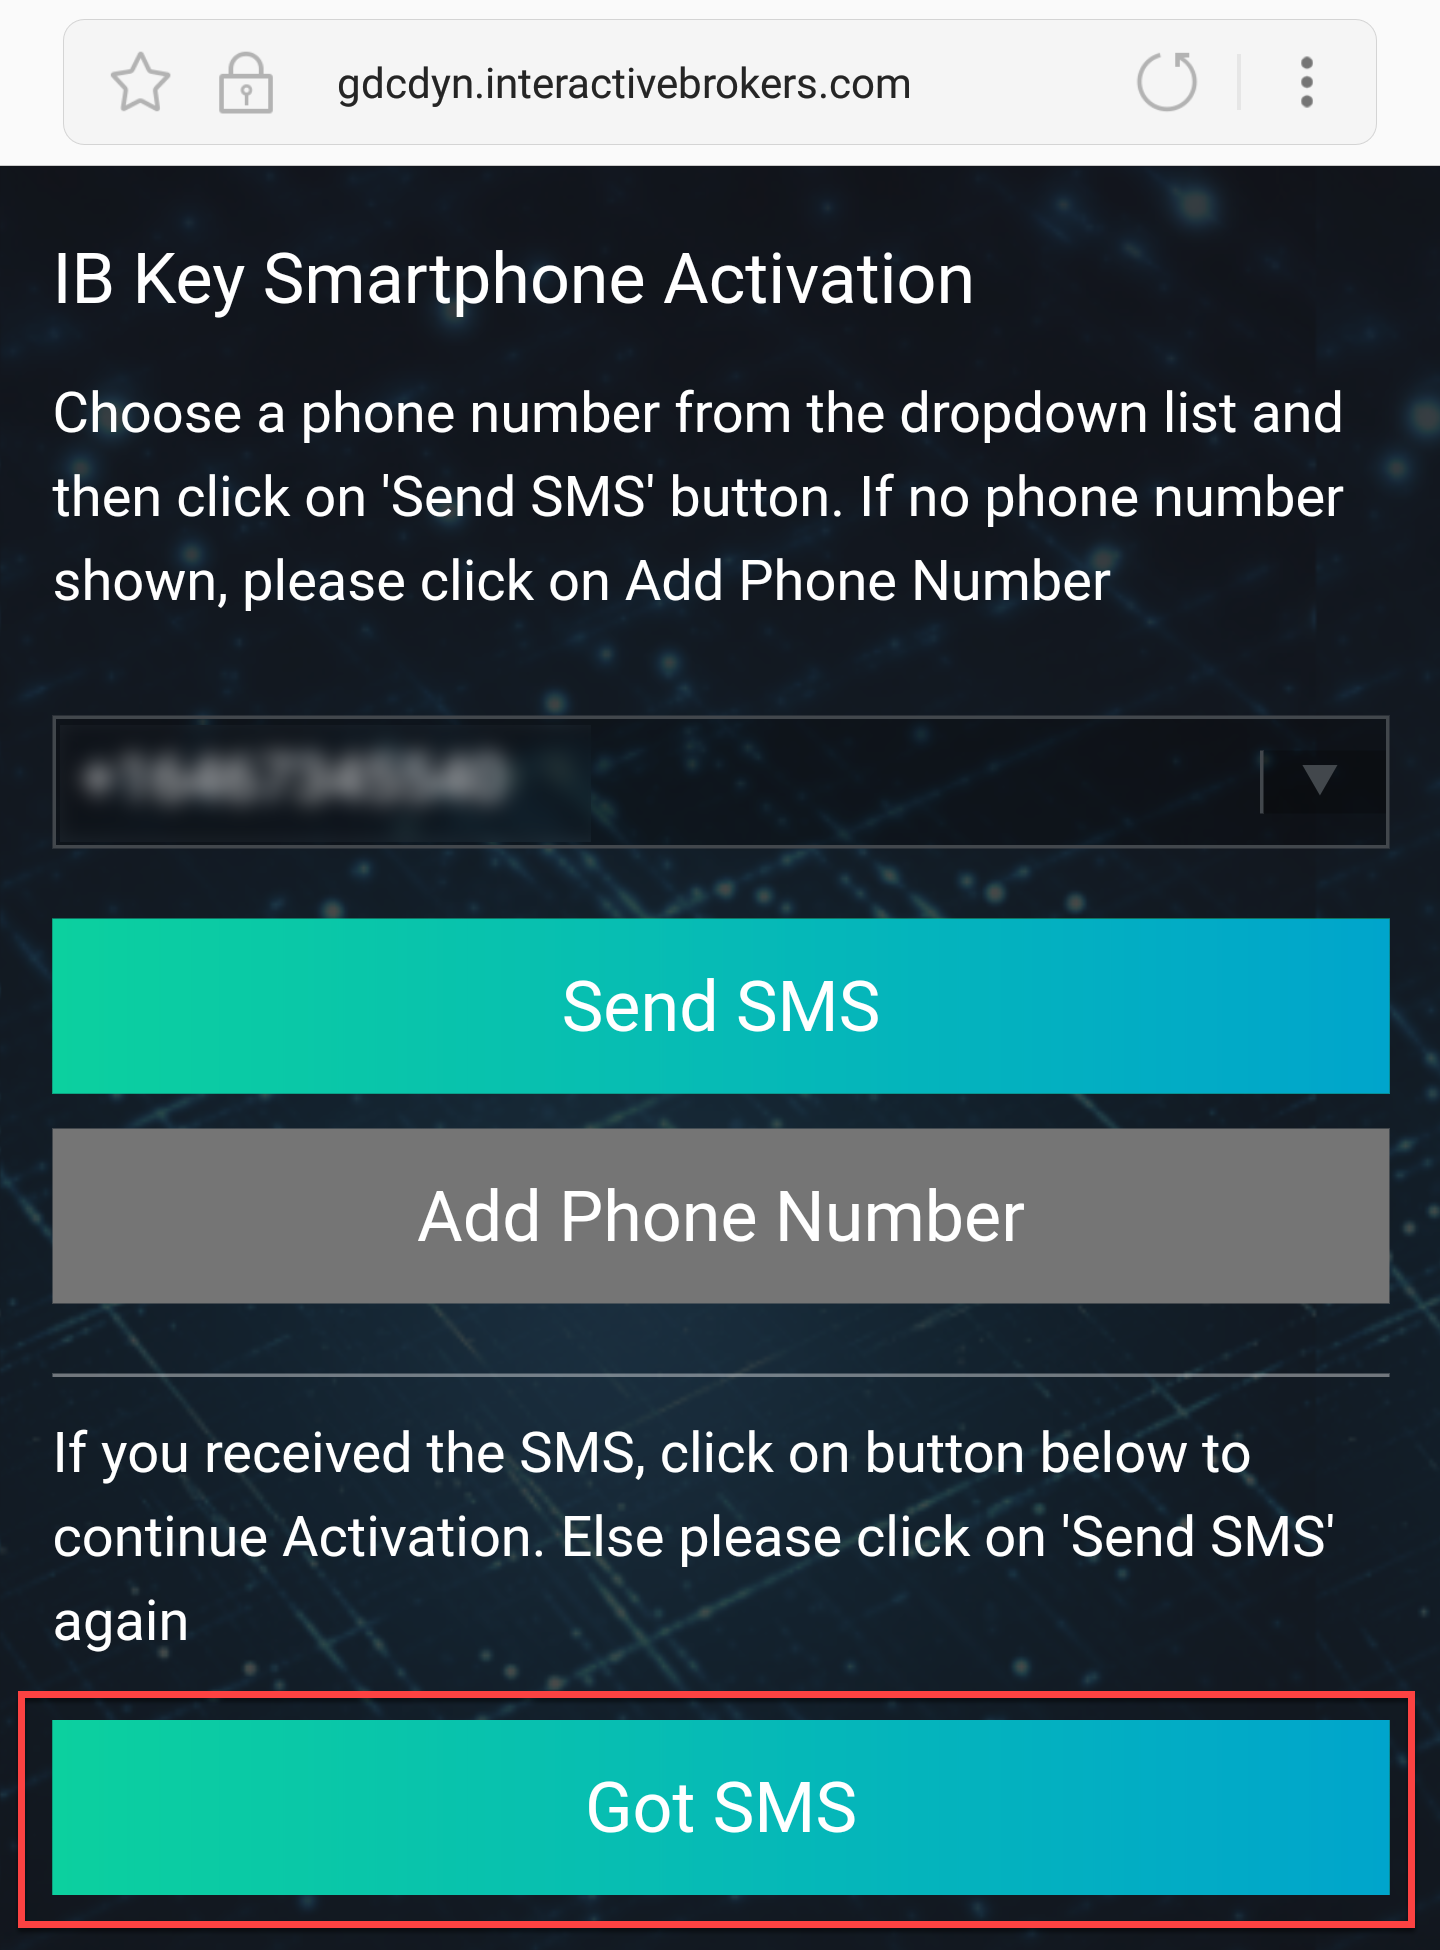 SMS received, tap Got SMS